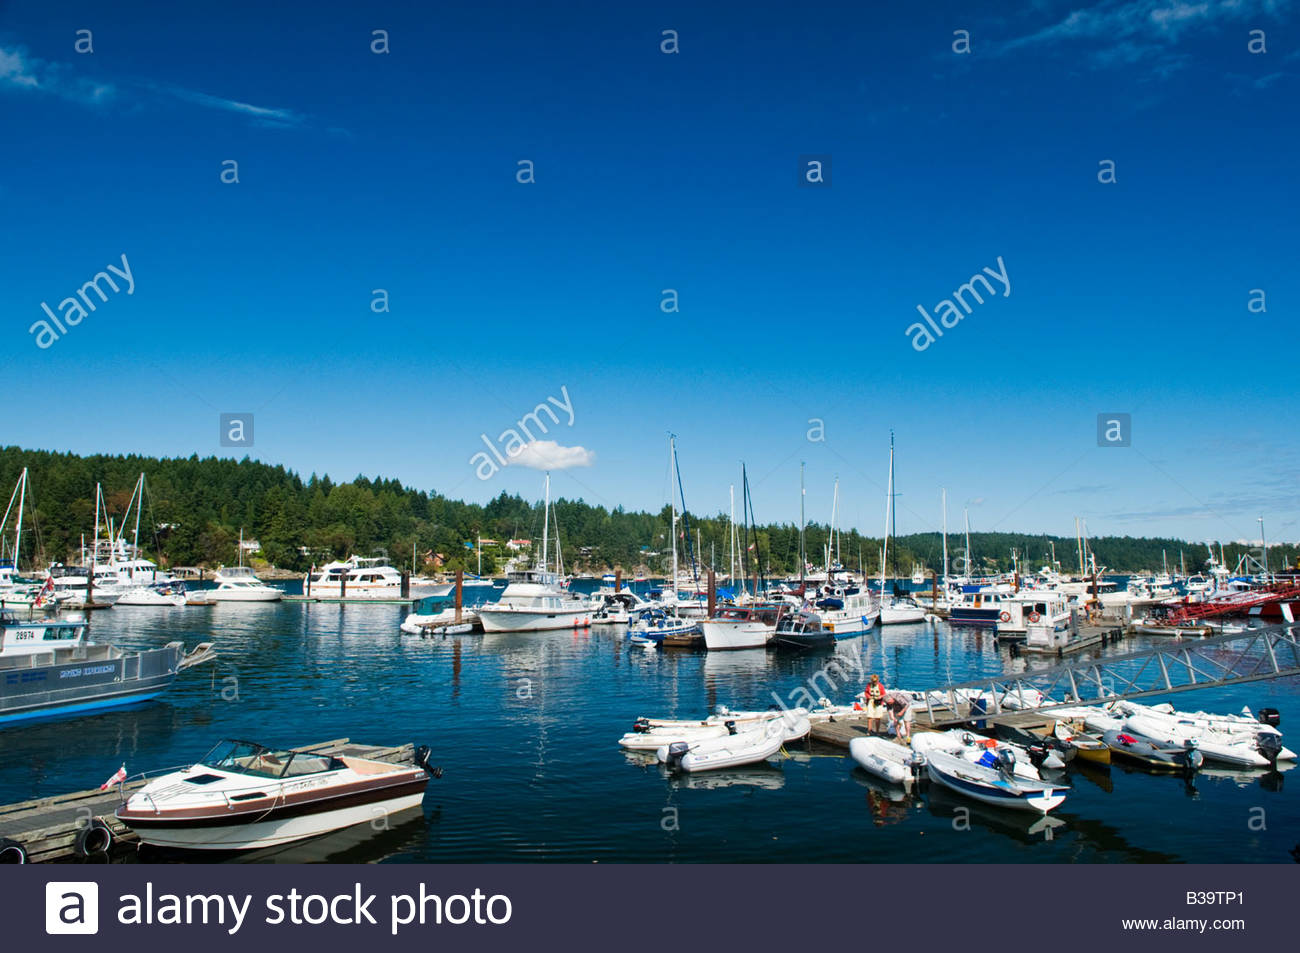 'Sailboats in Ganges Harbour on Saltspring Island  British Columbia Canada' - Stock Image